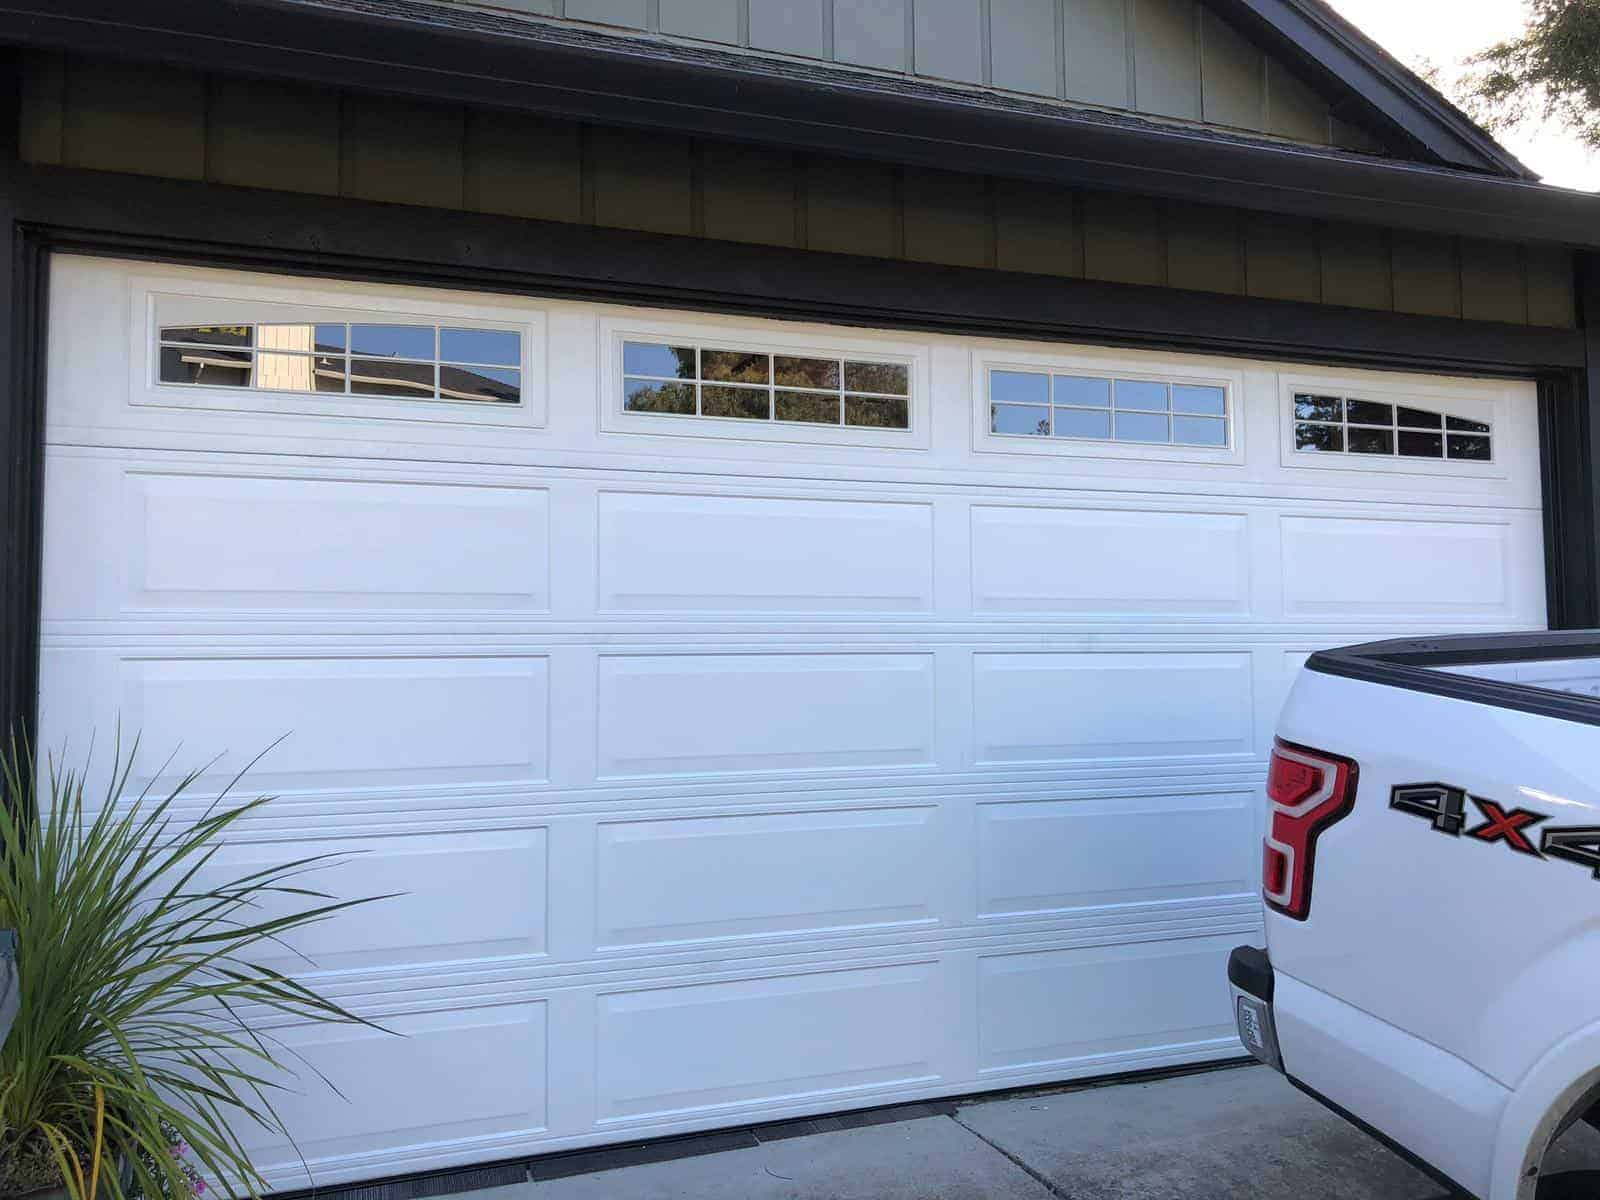 Sacramento CA Garage Door Repair & Replacement